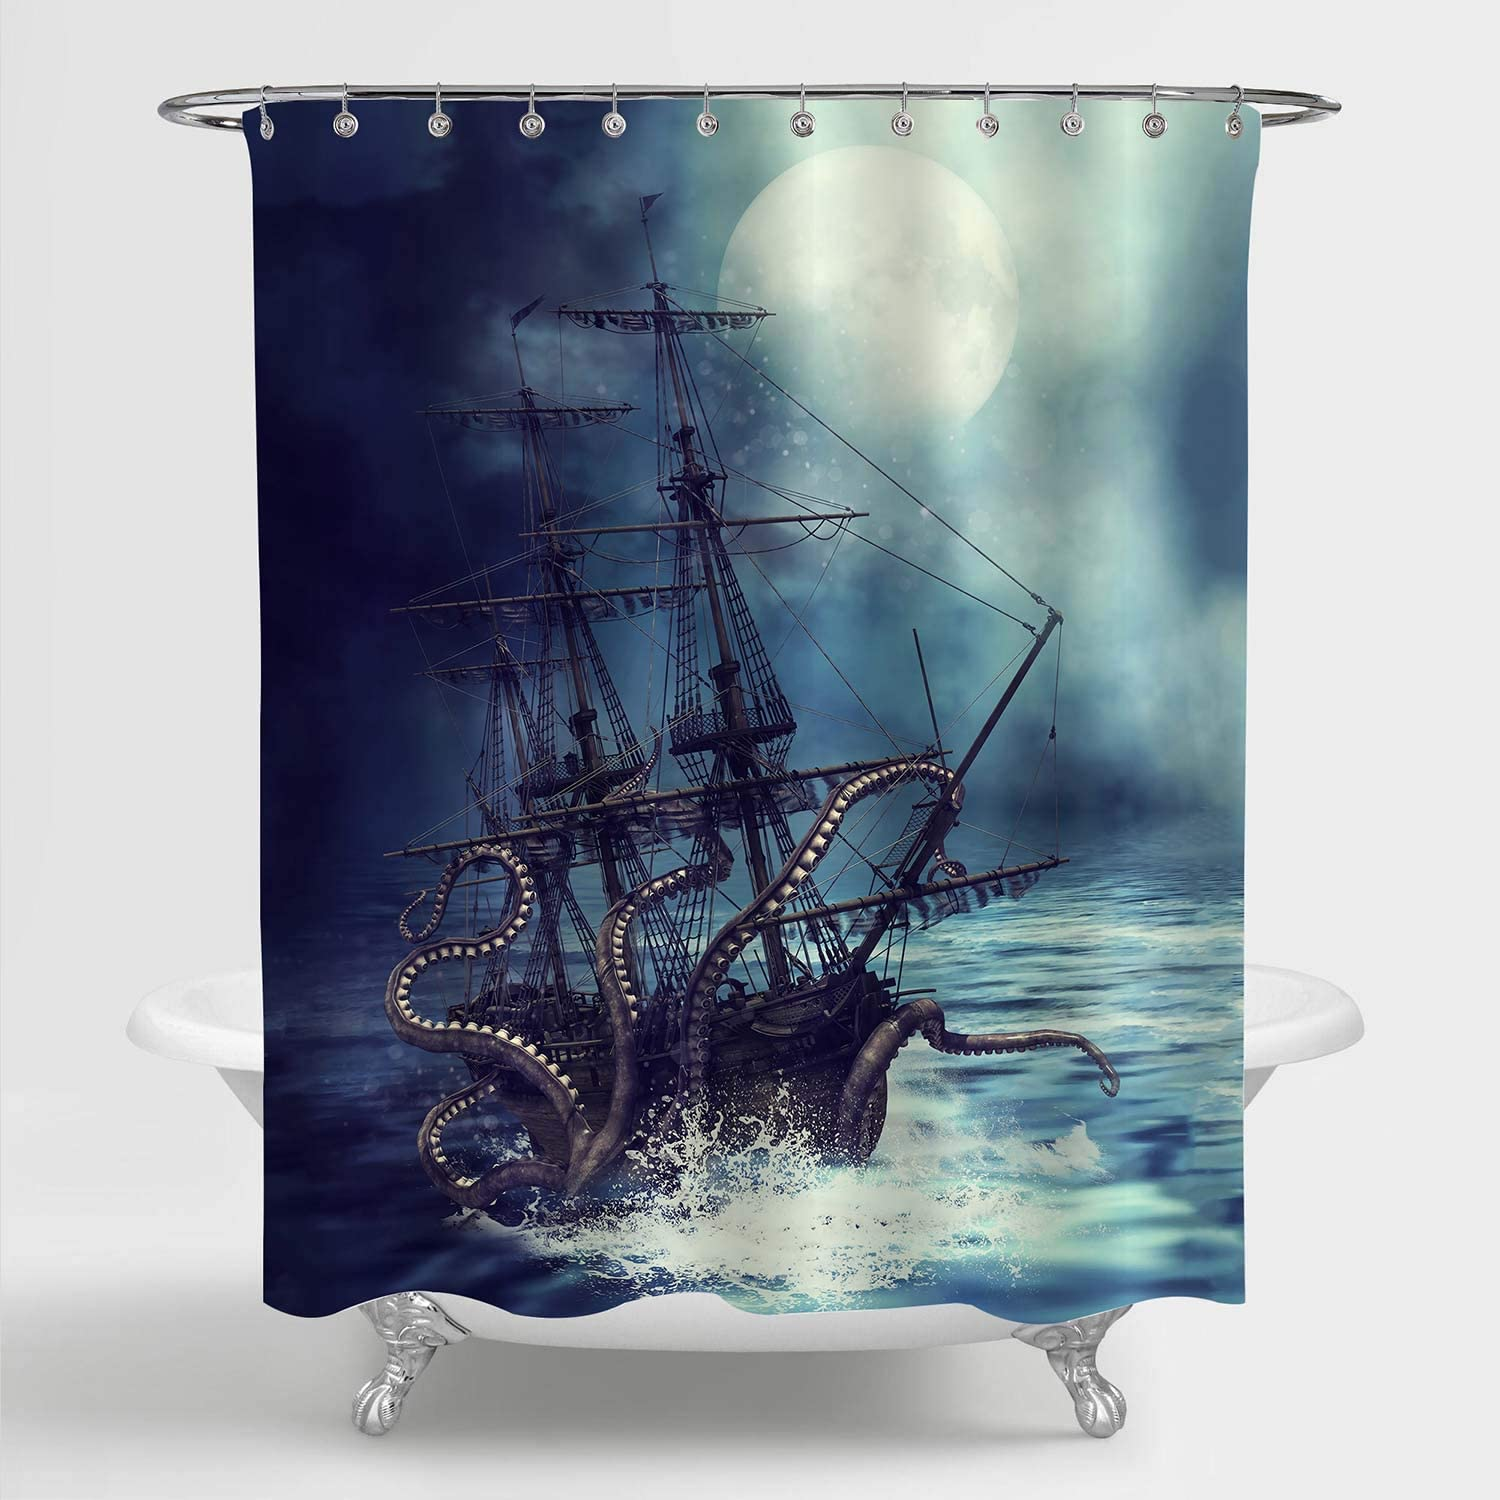 MitoVilla Nautical Sailboat Shower Curtain Set, Giant Sea Monster Octopus Kraken Attack Pirate Ship Art Print Bathroom Decor for Mens and Boy Ocean Animal Themed Gifts, 72